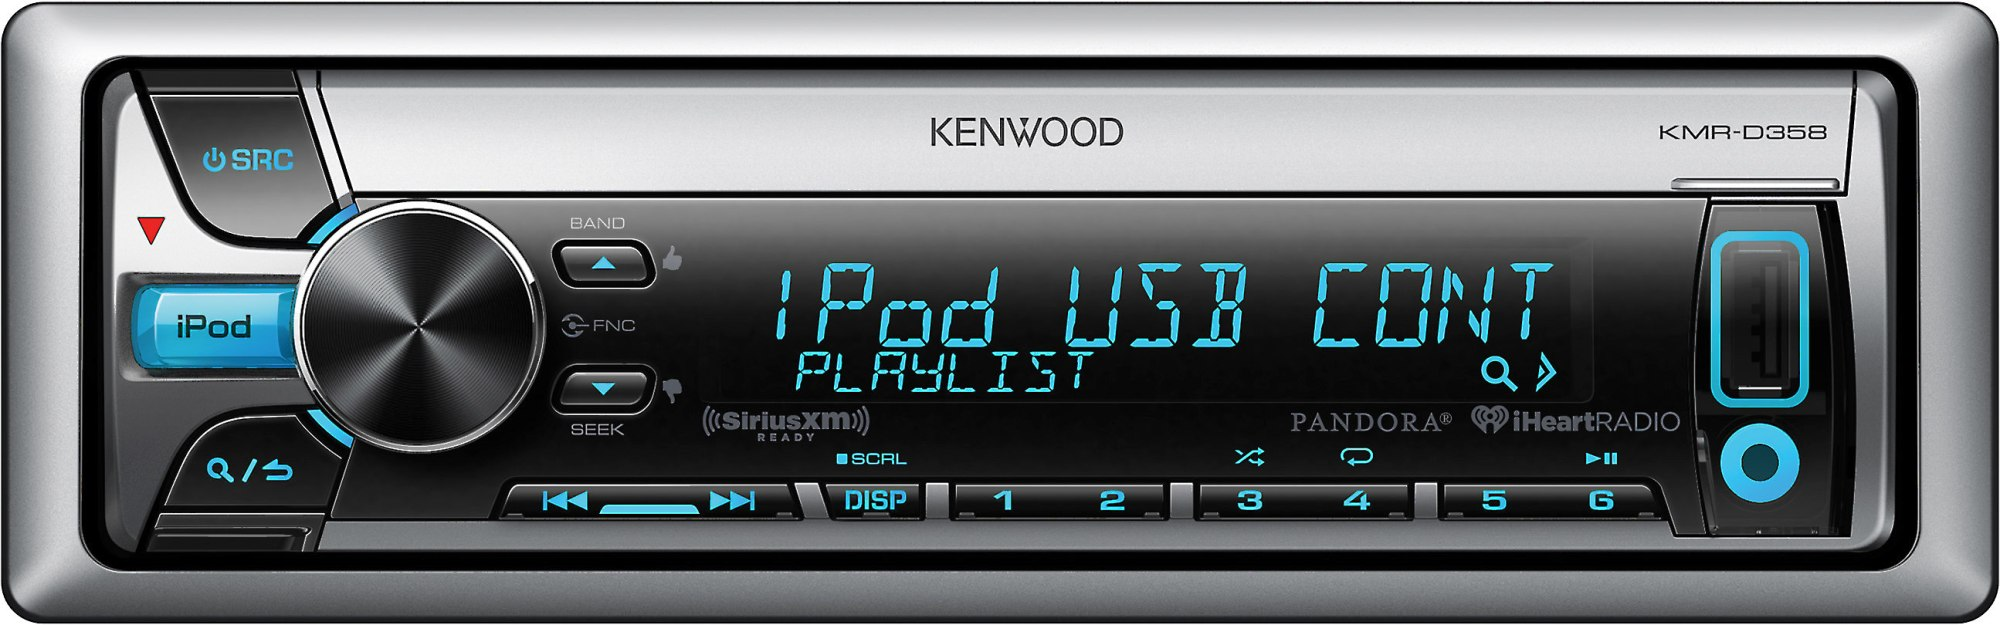 hight resolution of kenwood kmr d358 wiring harnes